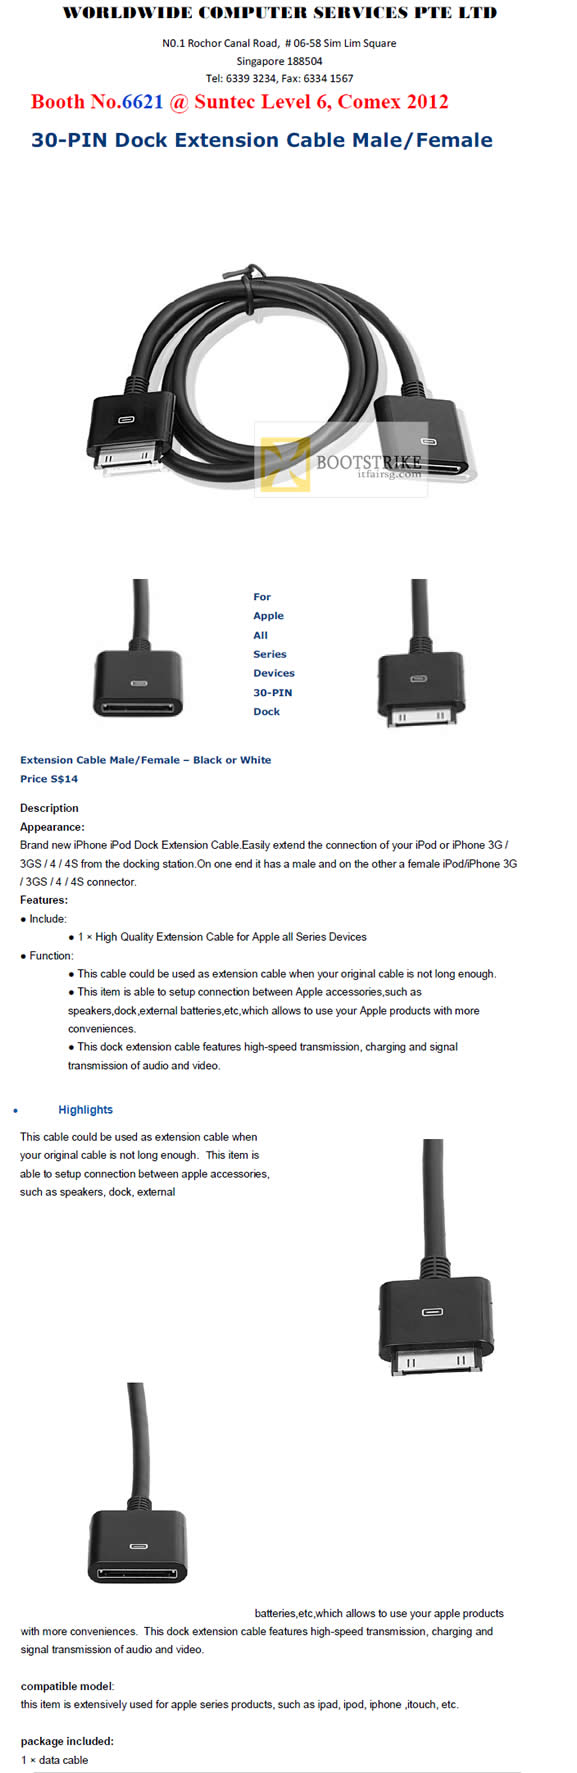 COMEX 2012 price list image brochure of Worldwide Computer 30 Pin Dock Extension Cable